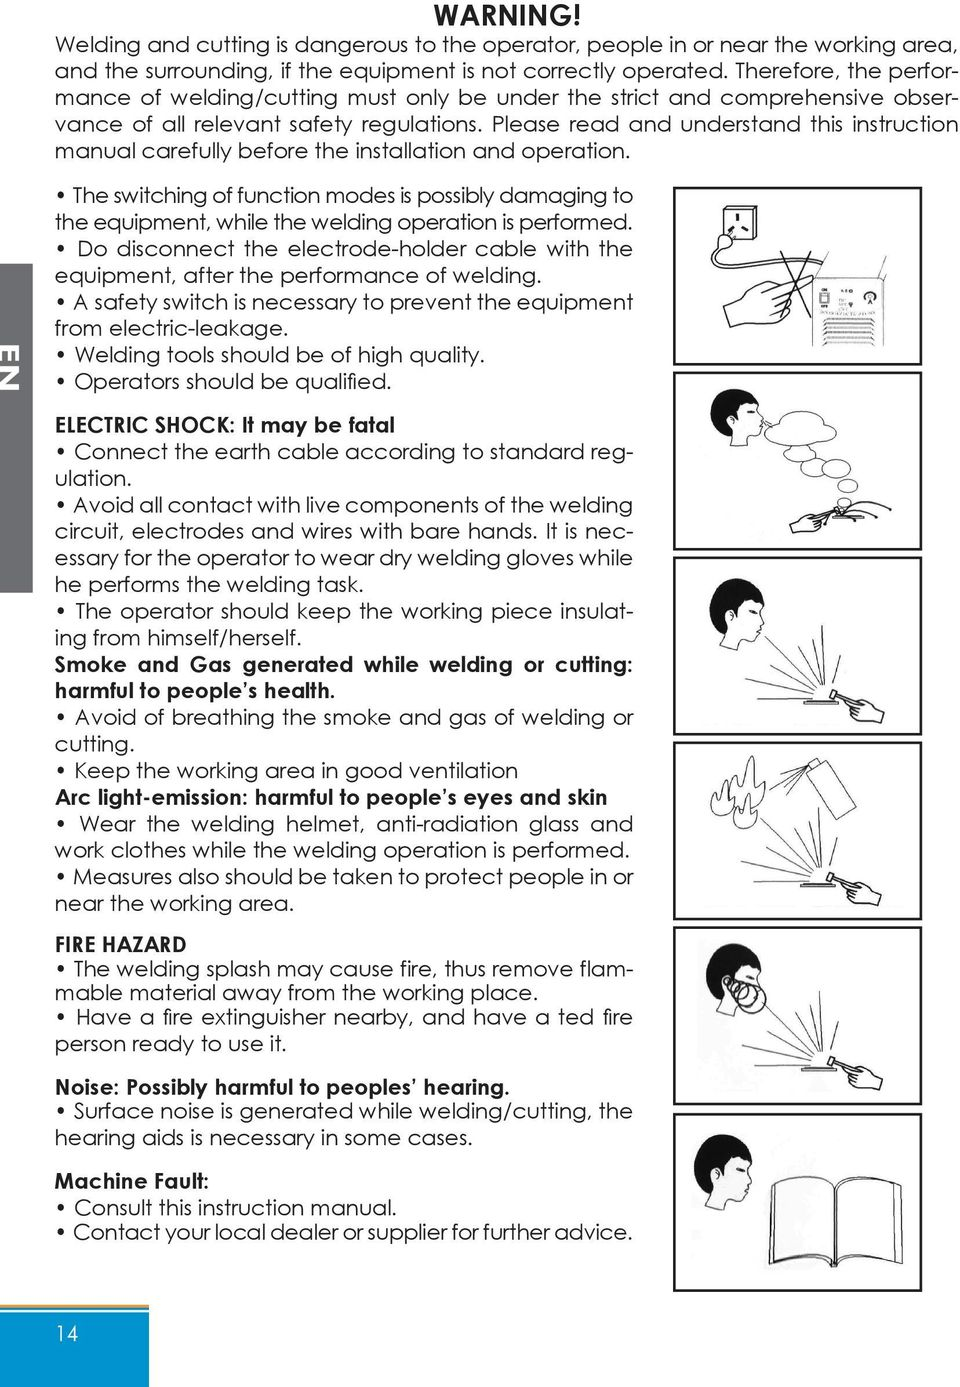 Please read and understand this instruction manual carefully before the installation and operation.